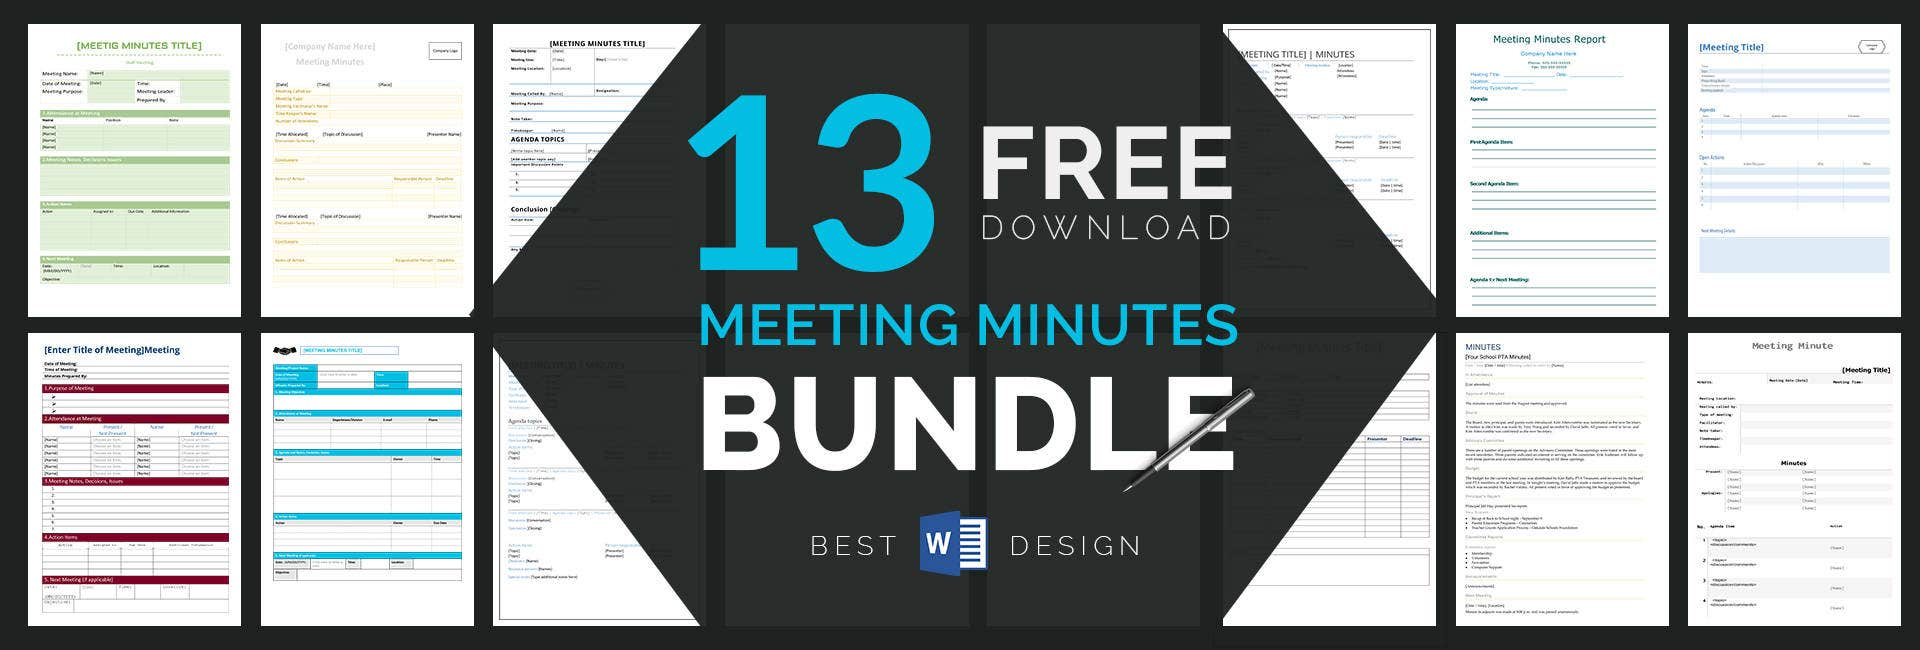 meetingminutesfreetemplate